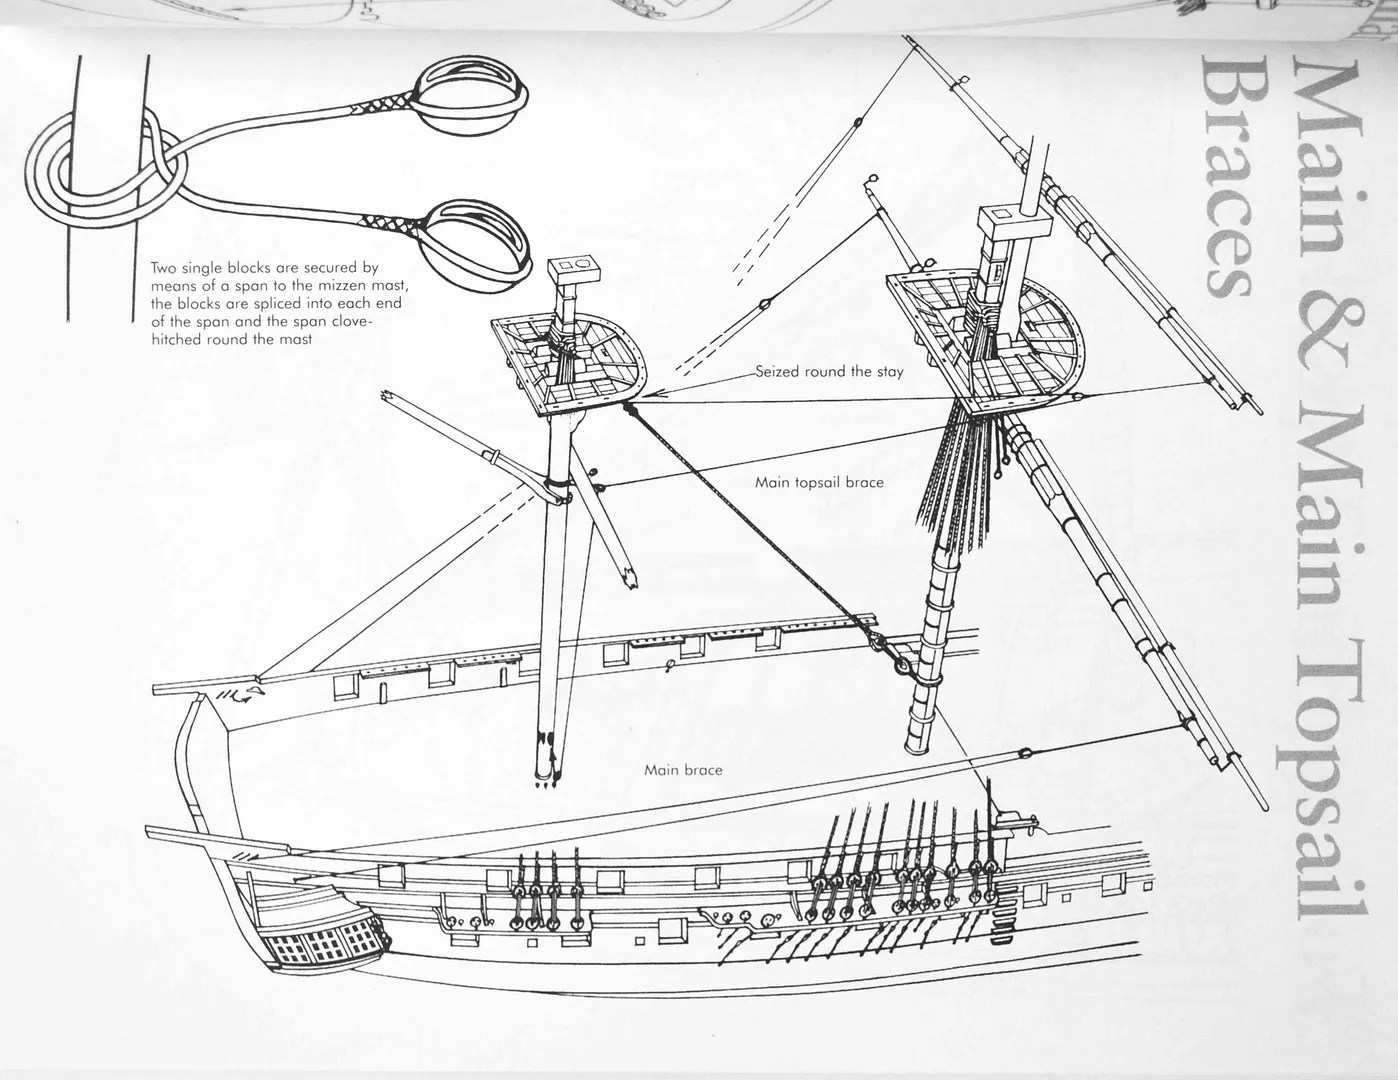 standing rigging diagram how solar panels work hms scorpion cruiser class brig of war page 20 rc groups